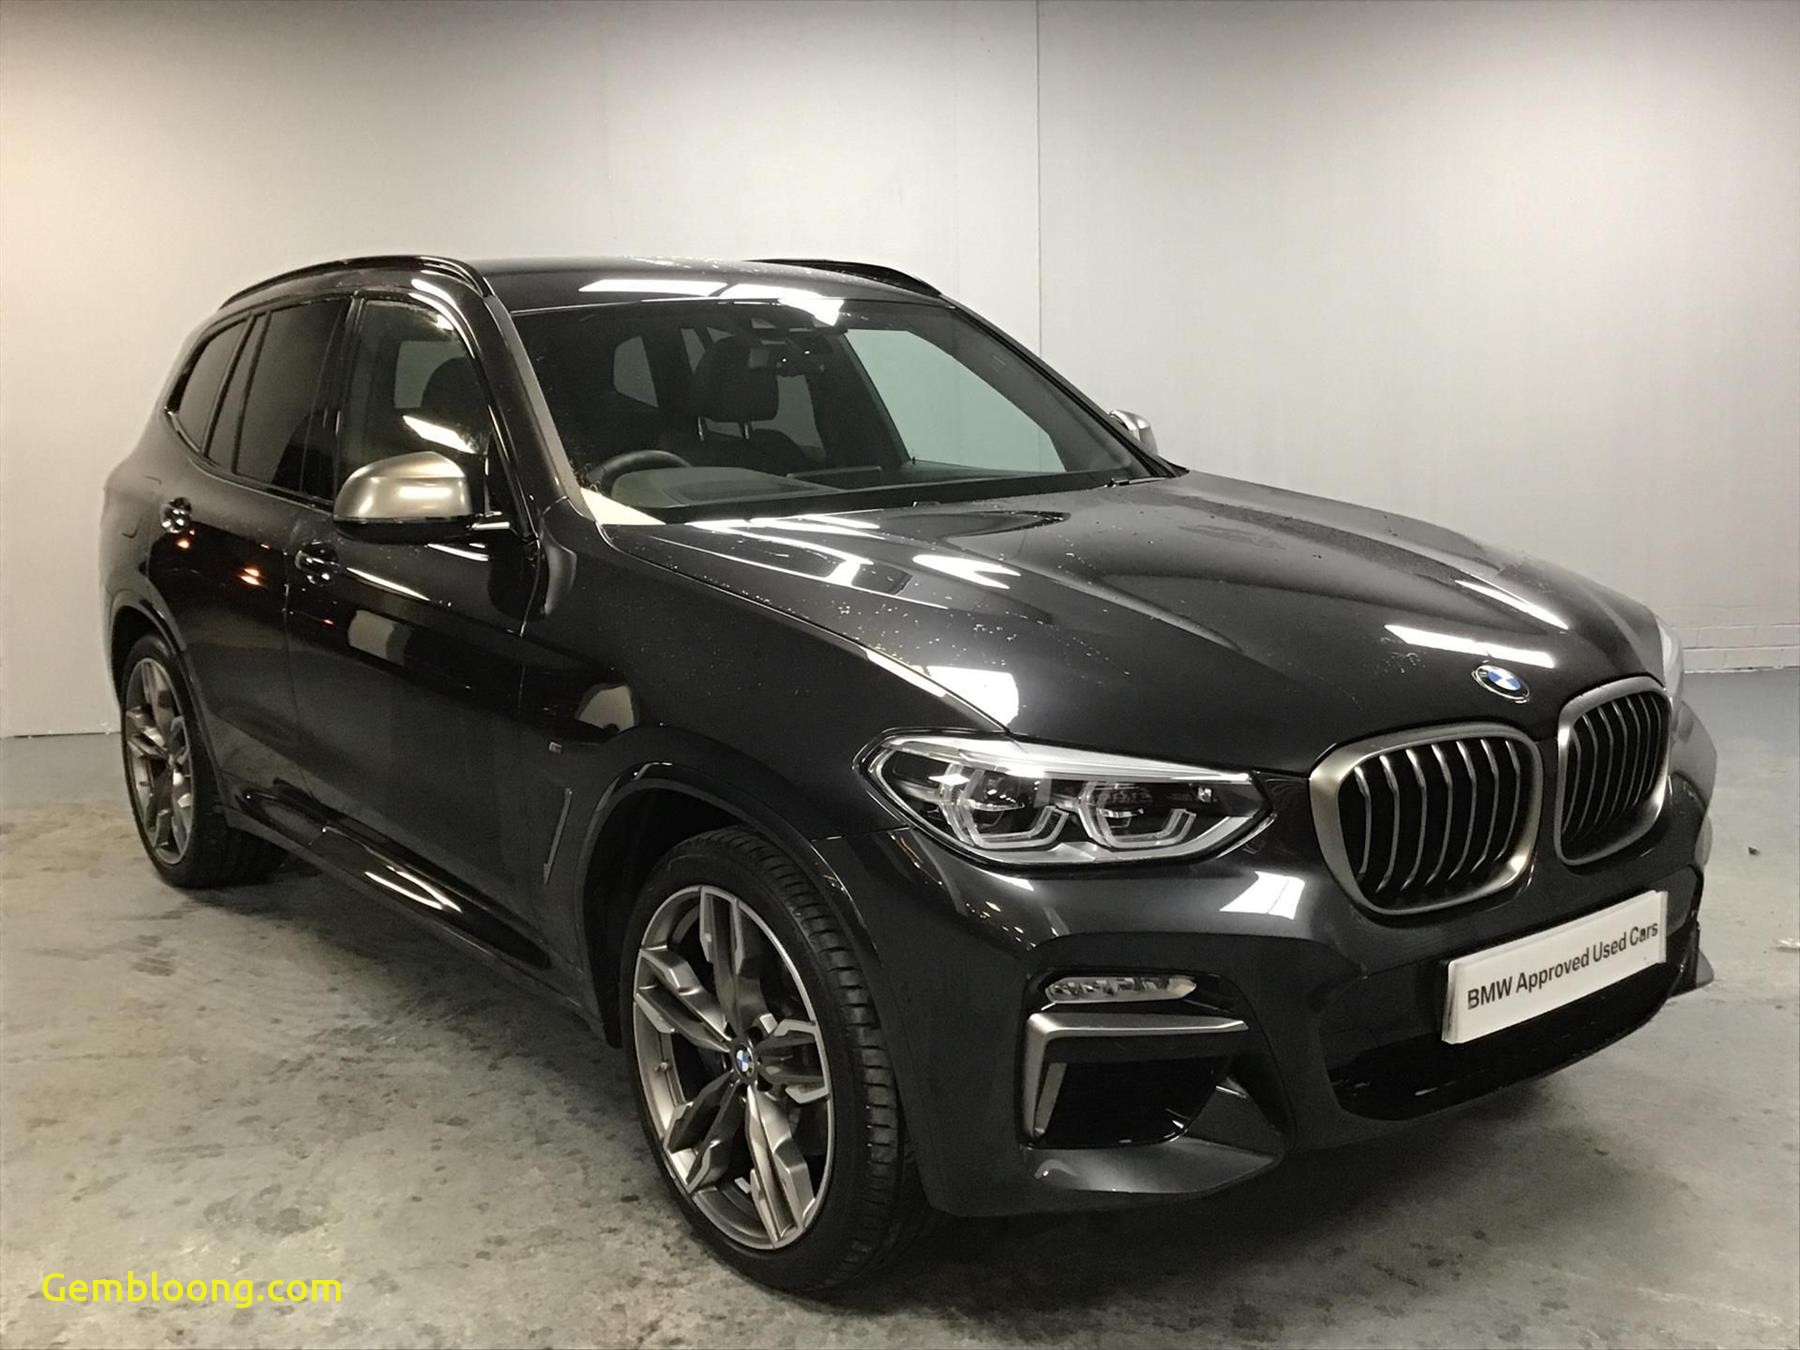 Used Car Reports Fresh Bmw X3 G01 X3 M40d Za B57 3 0d Used the Parking